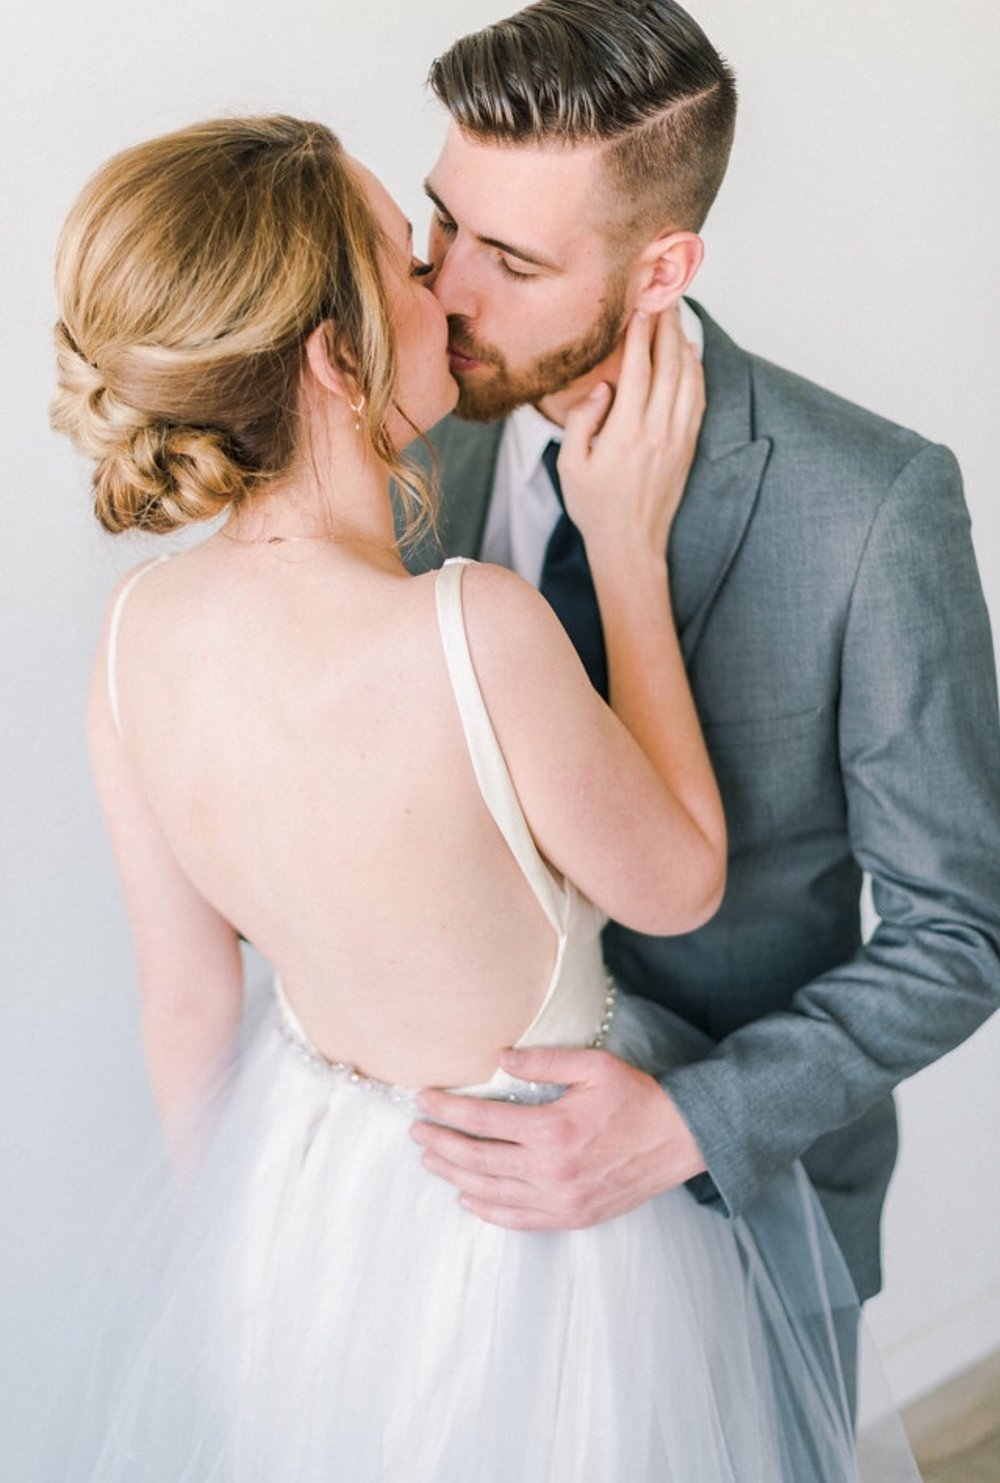 Denver-wedding-hairstylist-updo-artist